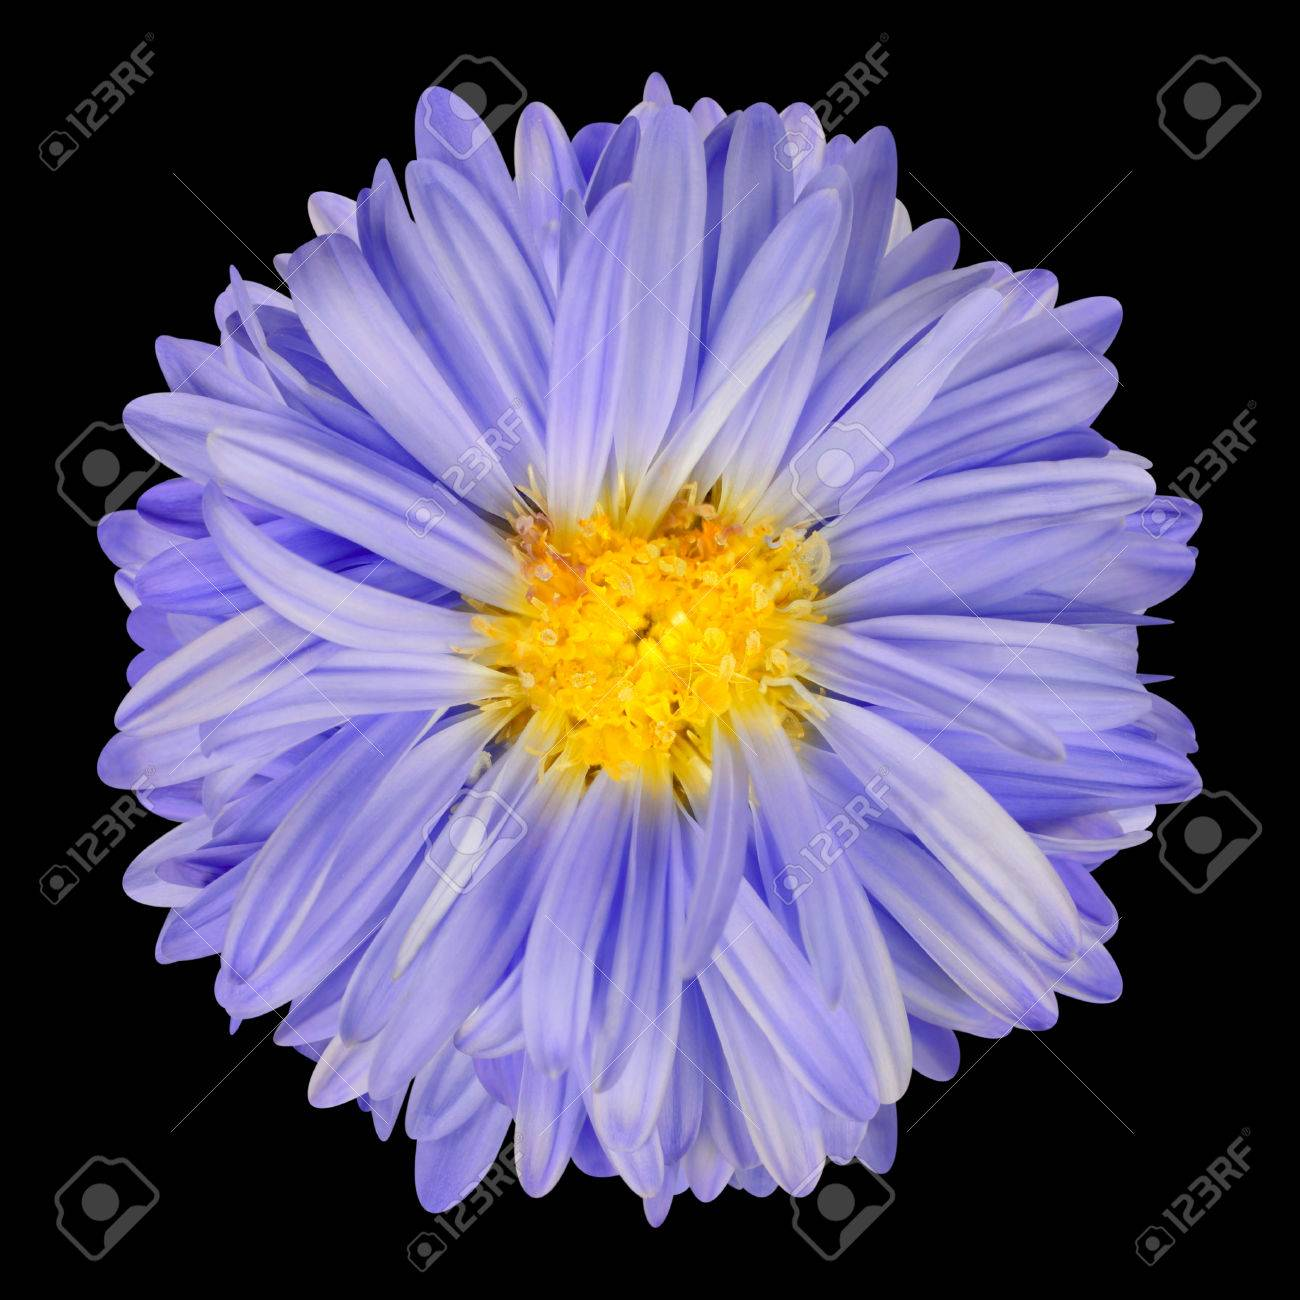 Purple Aster Flower With Narrow Purple Petals And Yellow Center